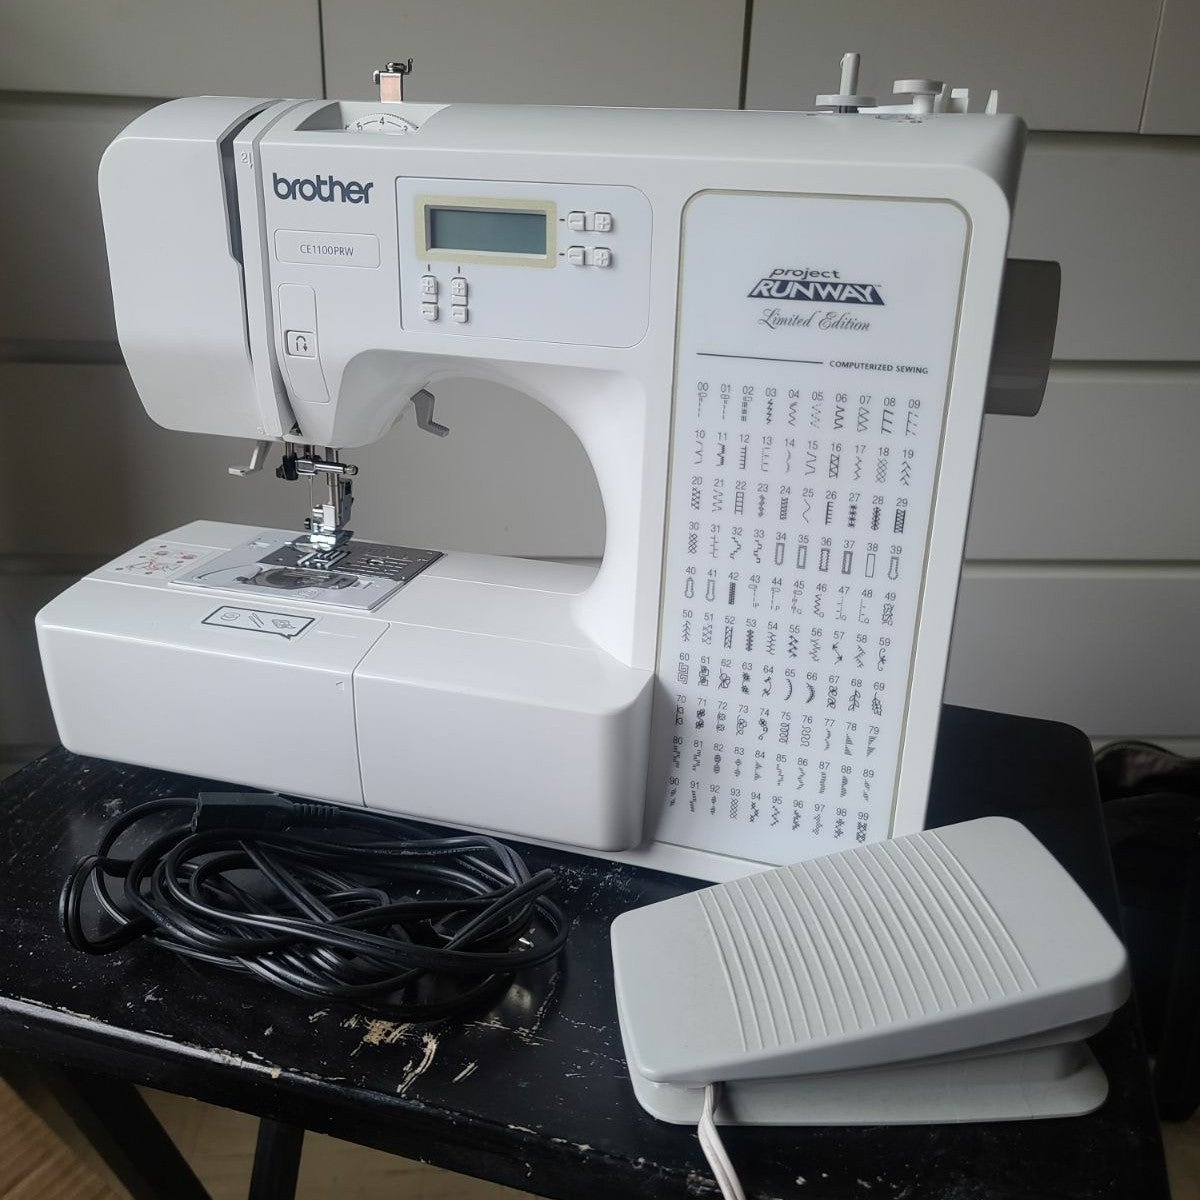 Brother Sewing Machine: Project Runway